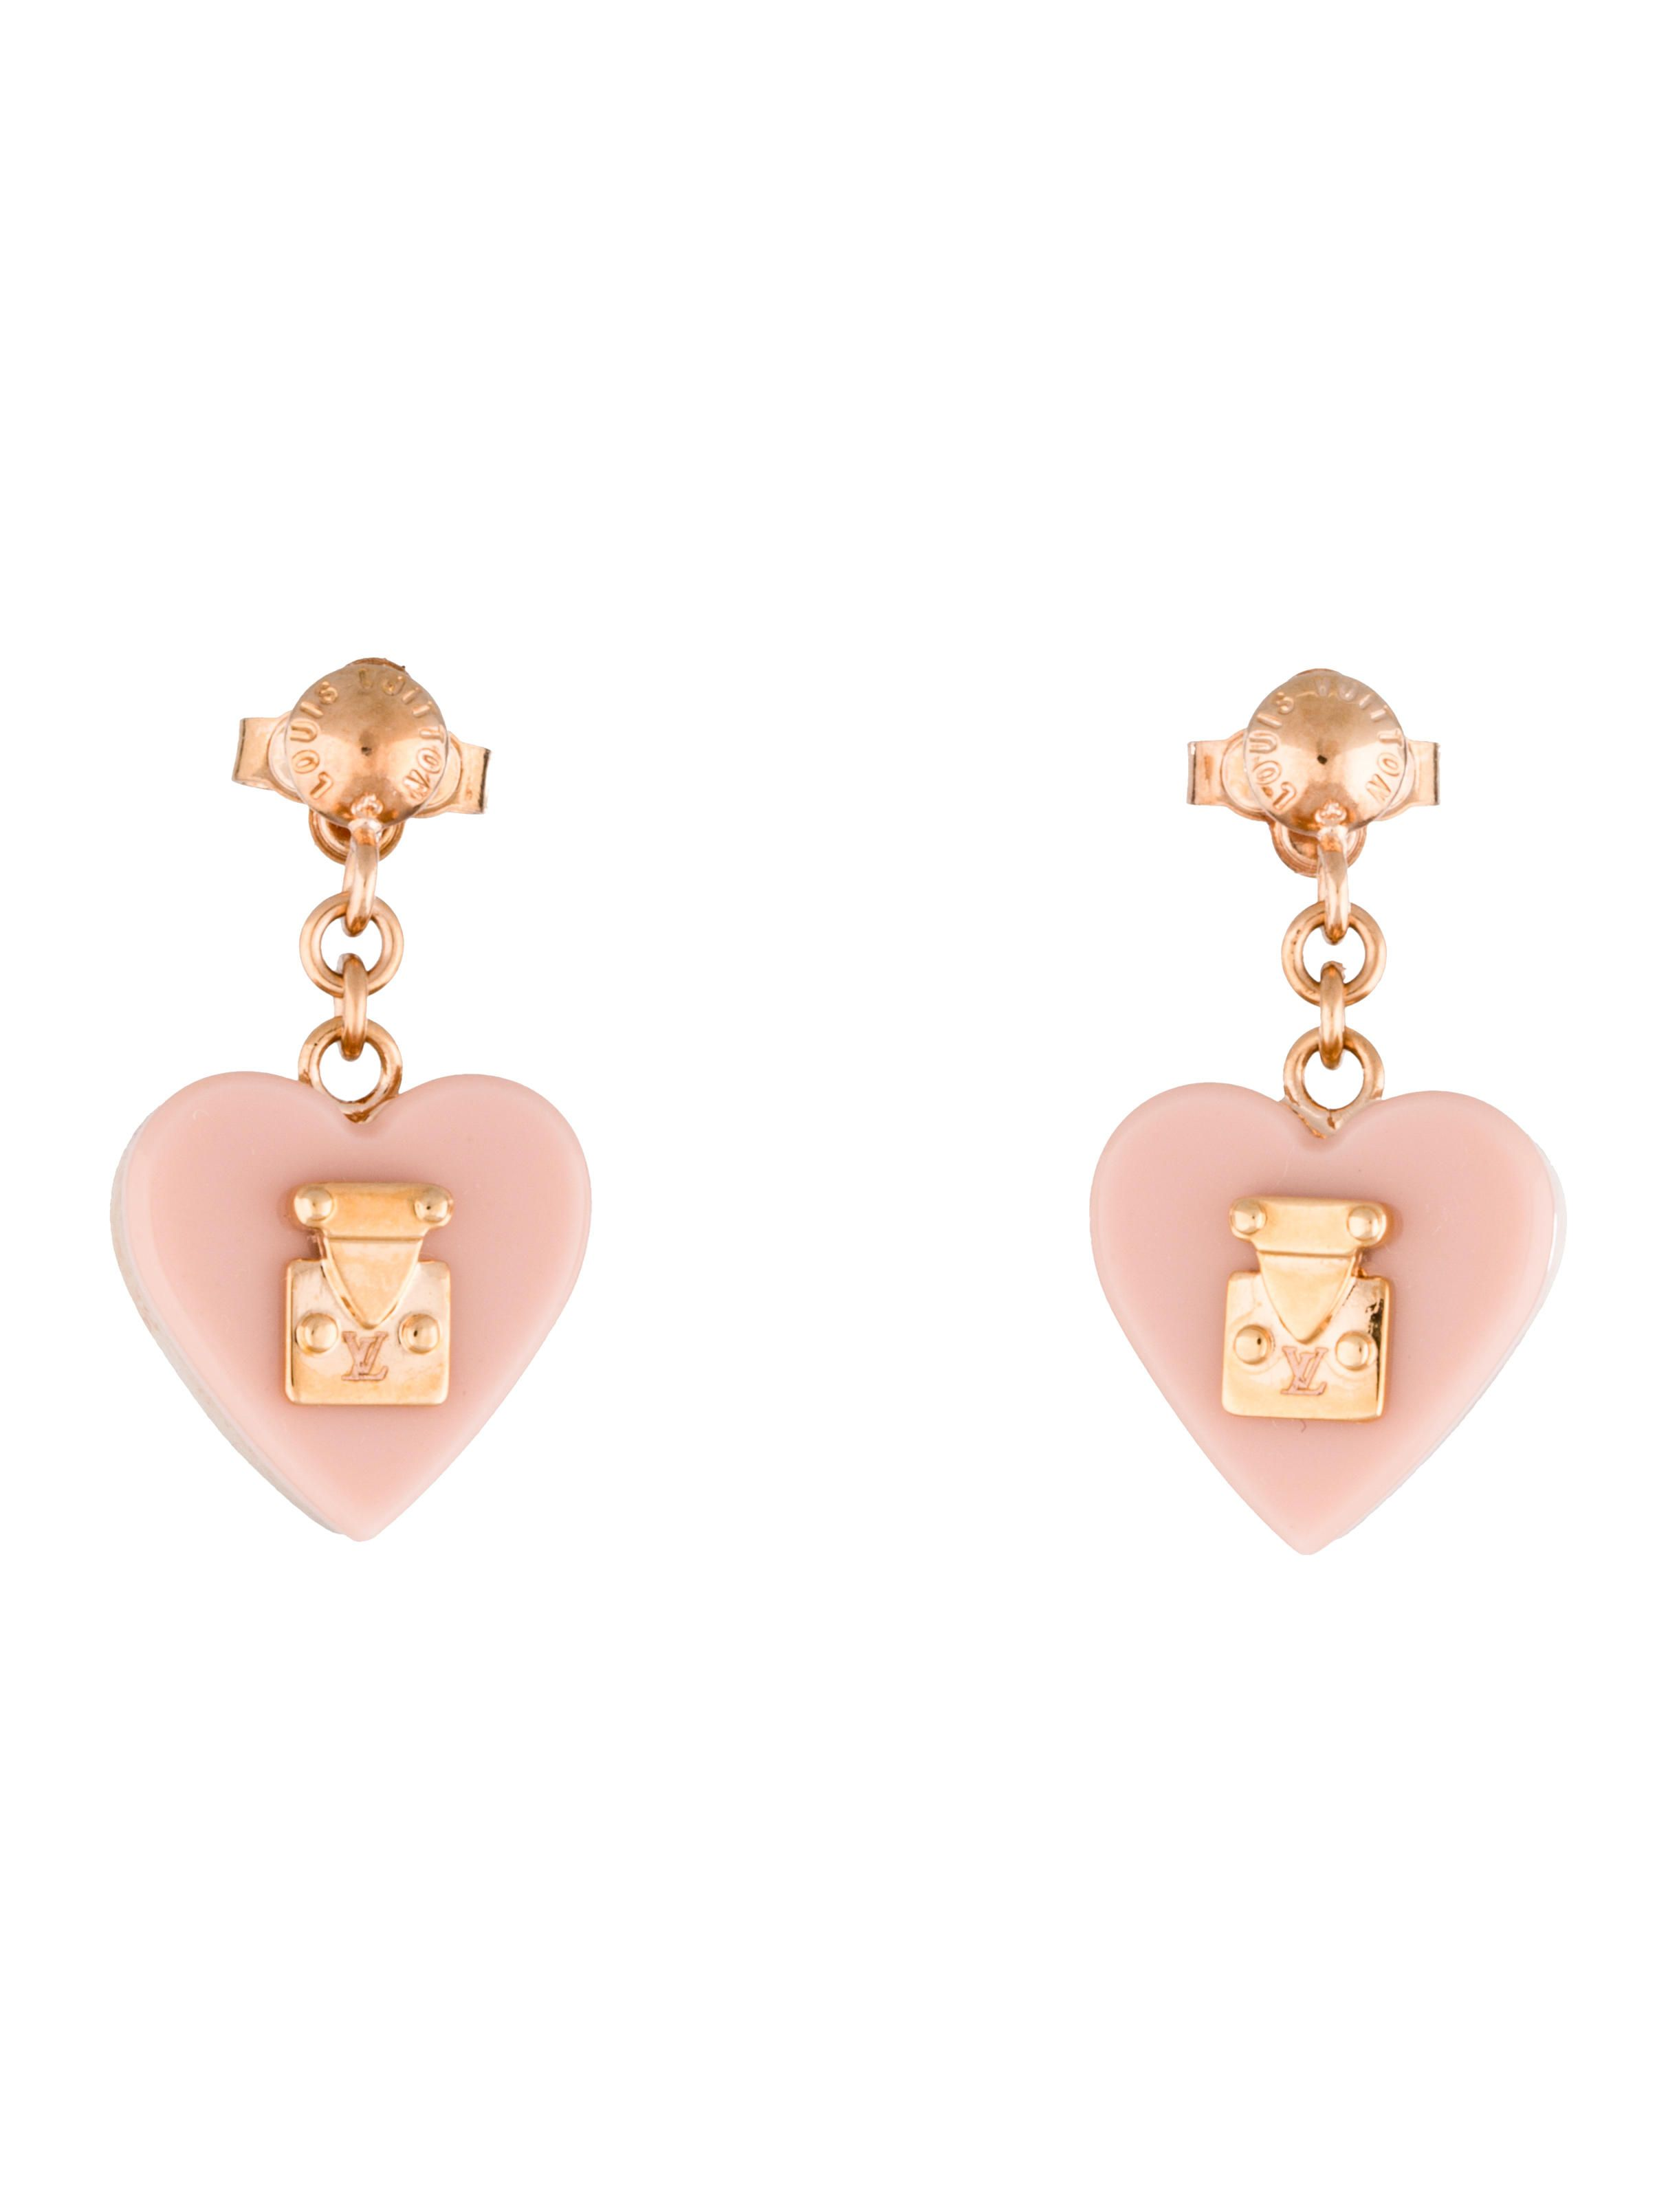 Rose Goldtone Louis Vuitton Lock Me Earrings With Pink Resin Heart Drops  And Clutch